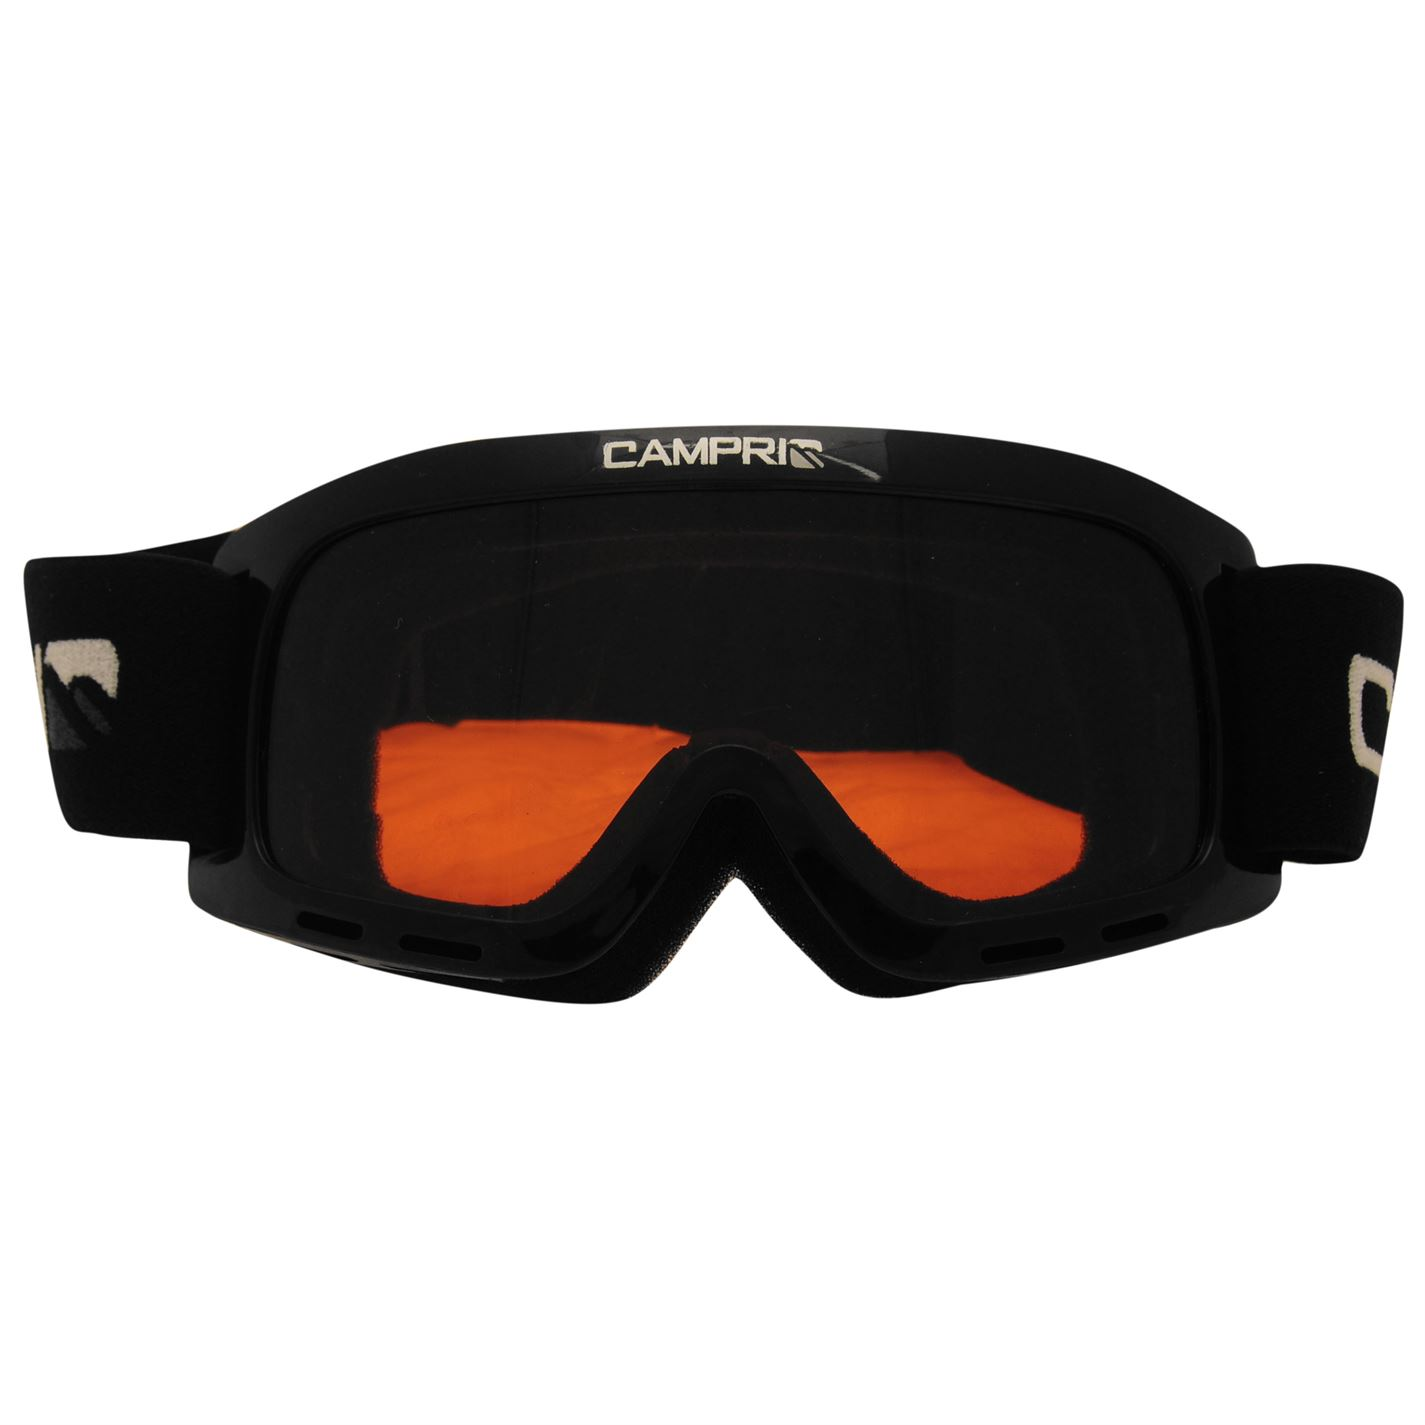 d74687d0b95 Campri Star Ski Goggles Youngster Childrens 5057918458763